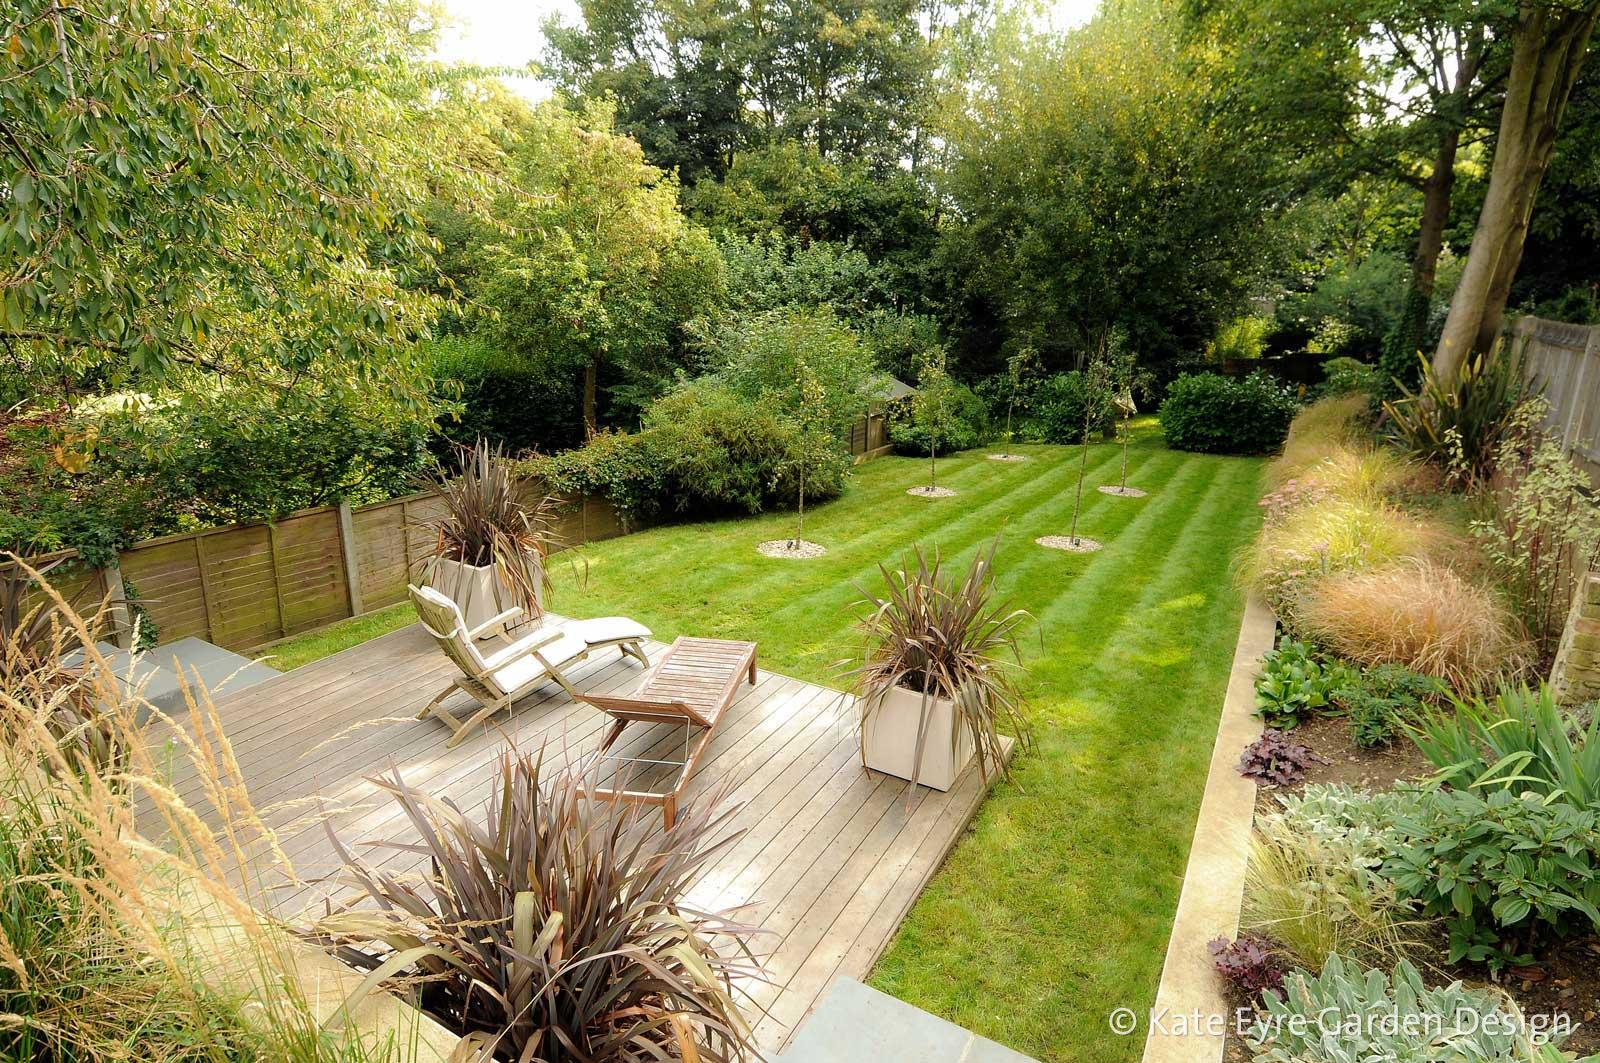 Garden design in crystal palace south east london for Create garden design